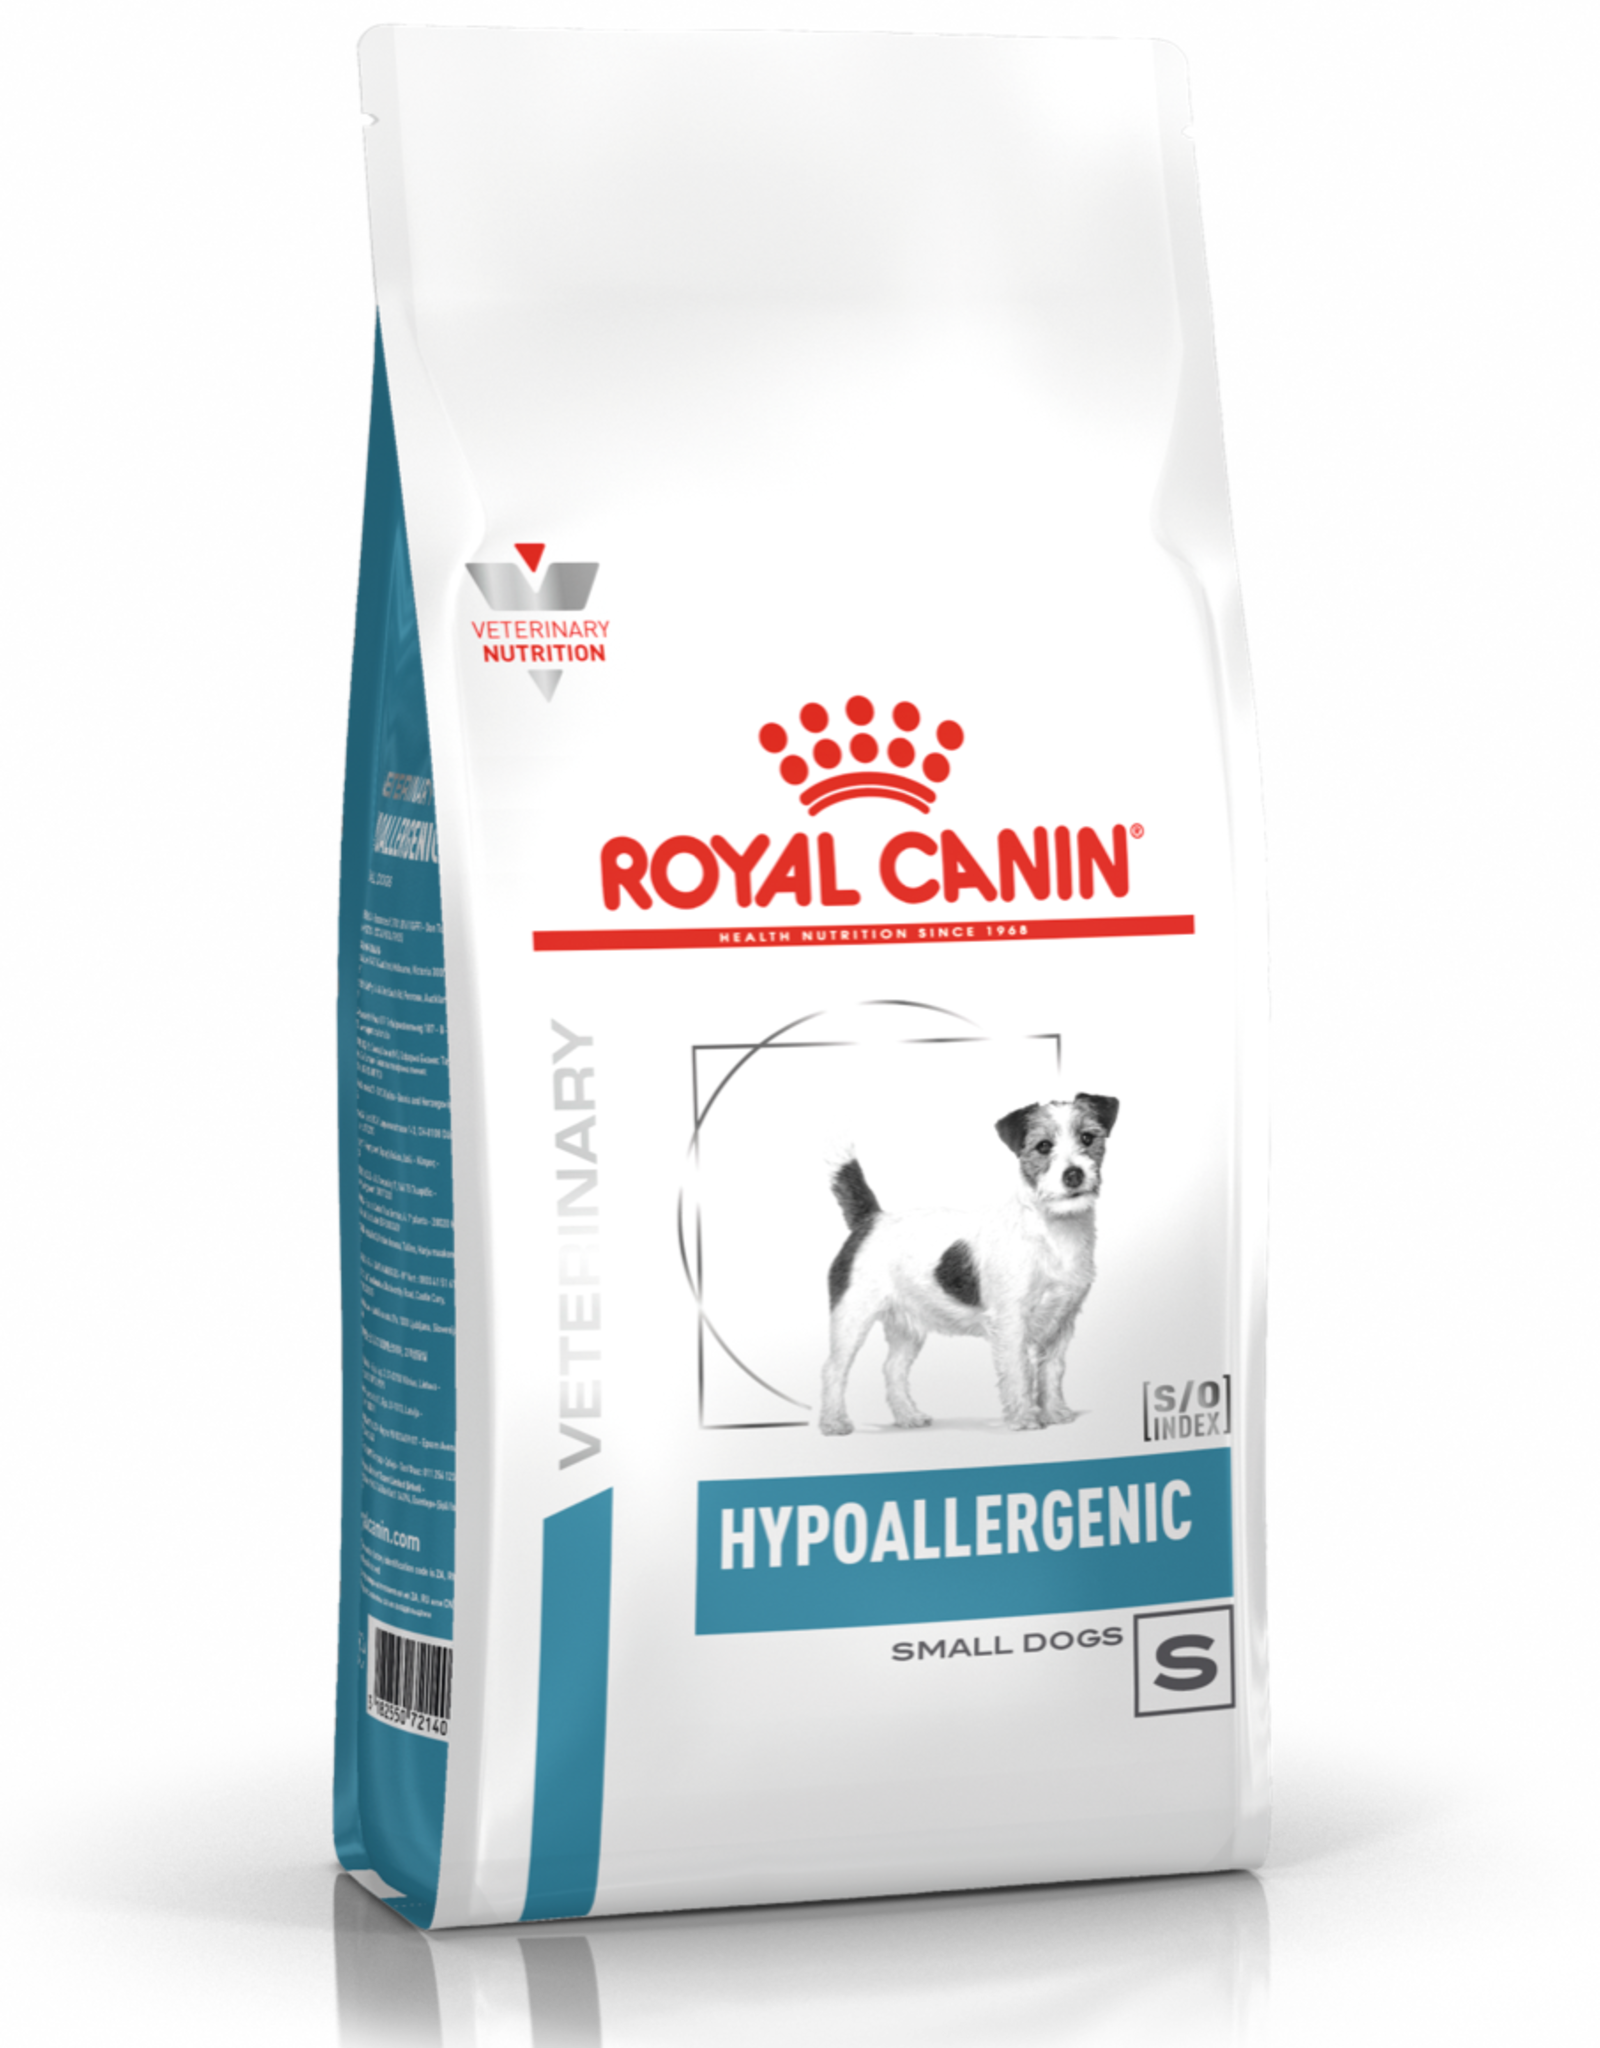 Royal Canin Royal Canin Hypoallergenic Small Chien 1kg